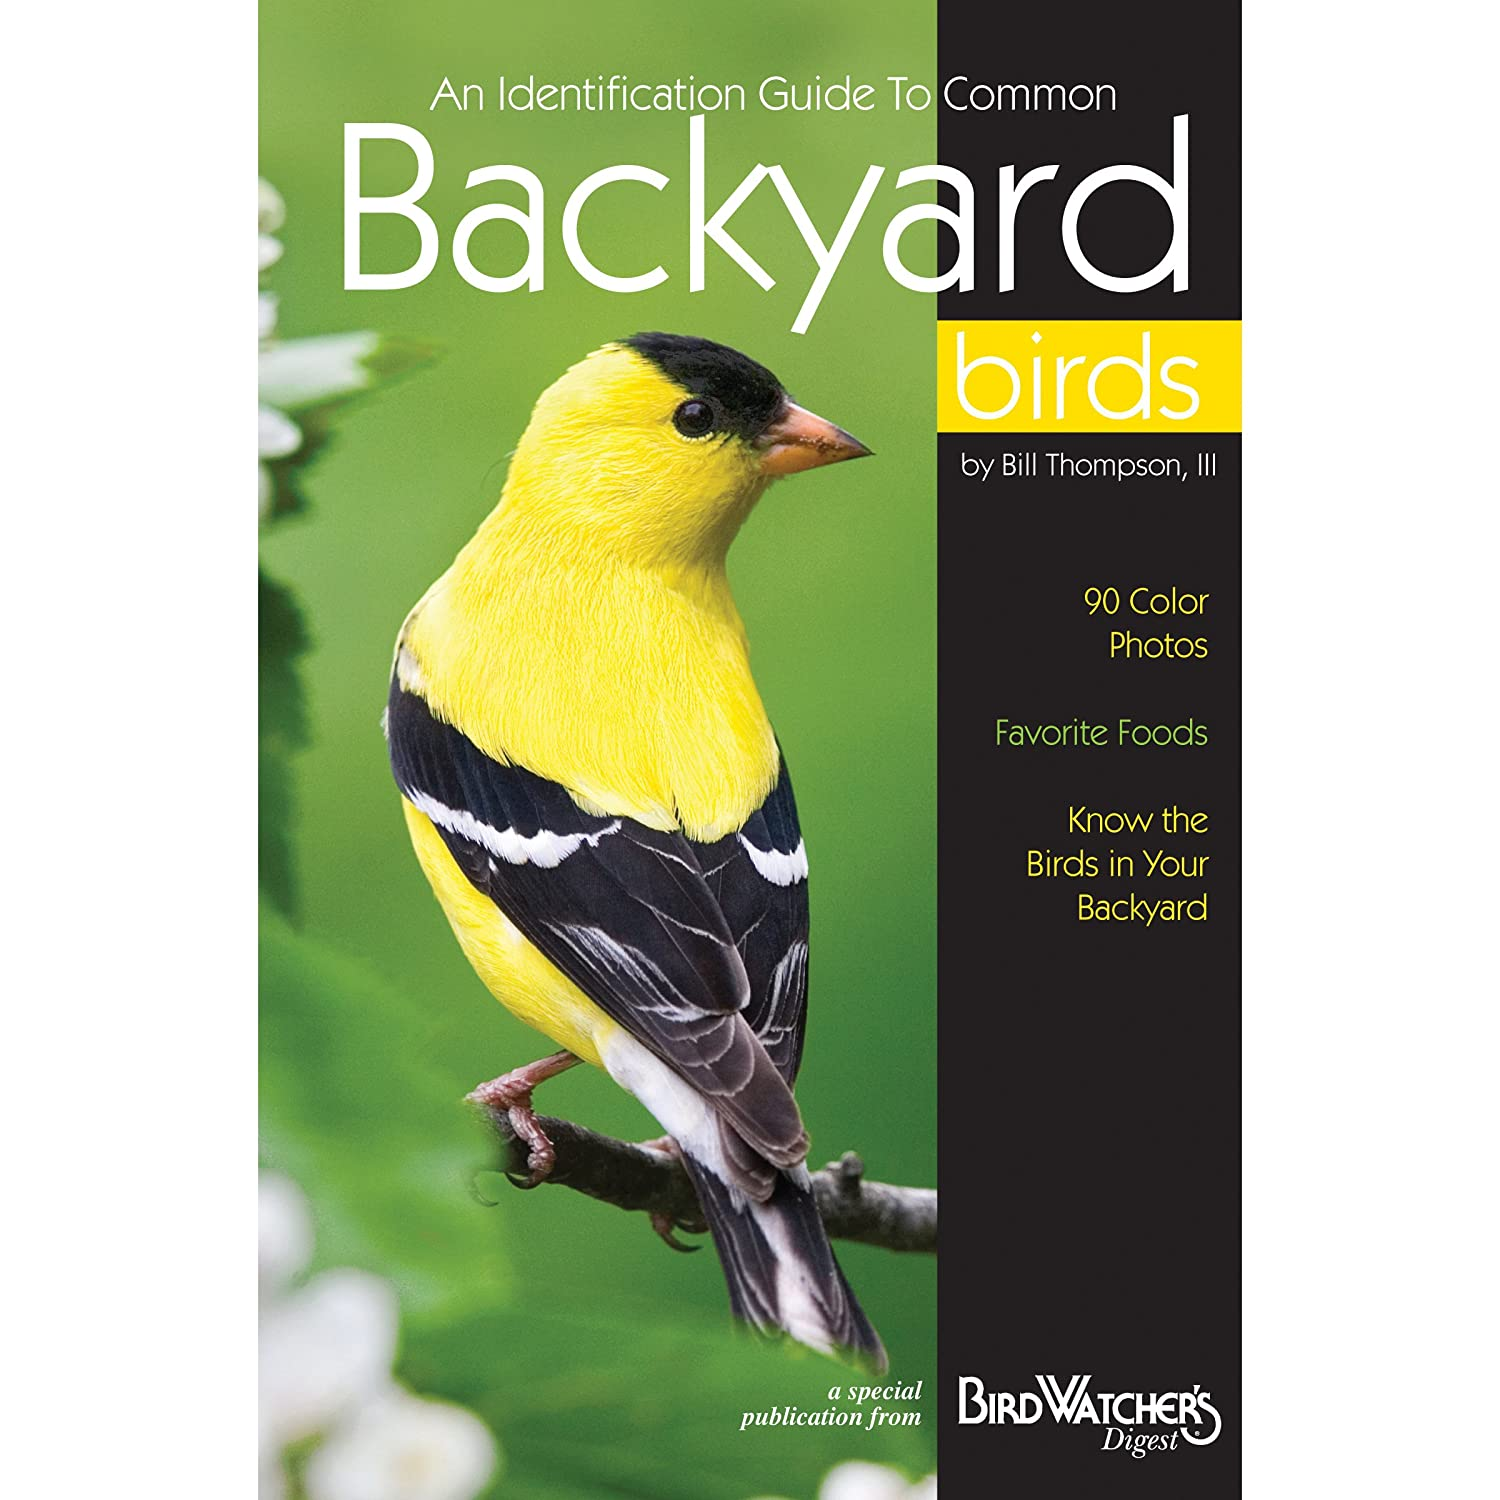 Identification Guide to Common Backyard Birds: A Special Publication from Bird Watcher's Digest Bird Watchers Digest Press 345 IF-HSES-BPM0 Nature/Ecology